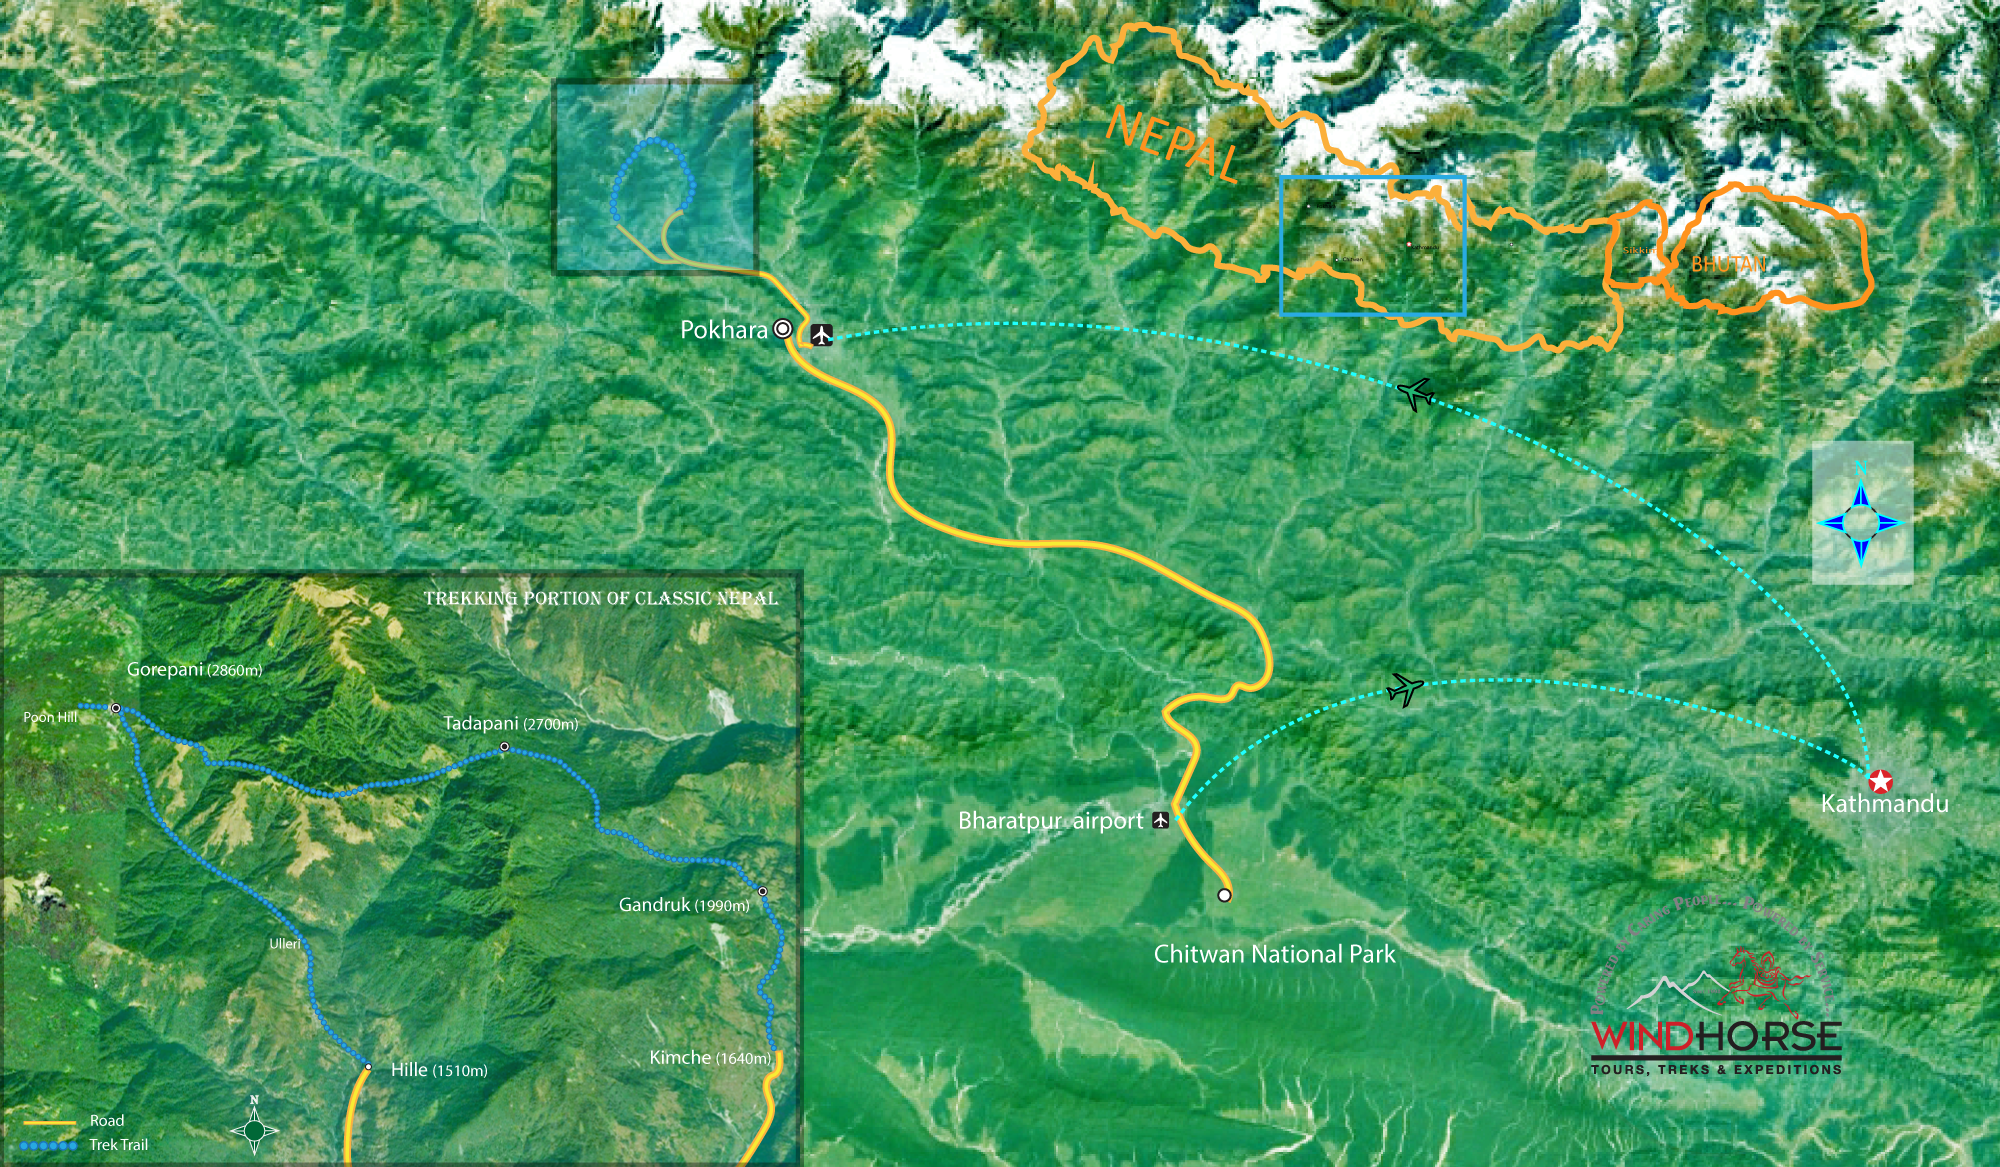 Classic Nepal Tour Trip Map, Route Map